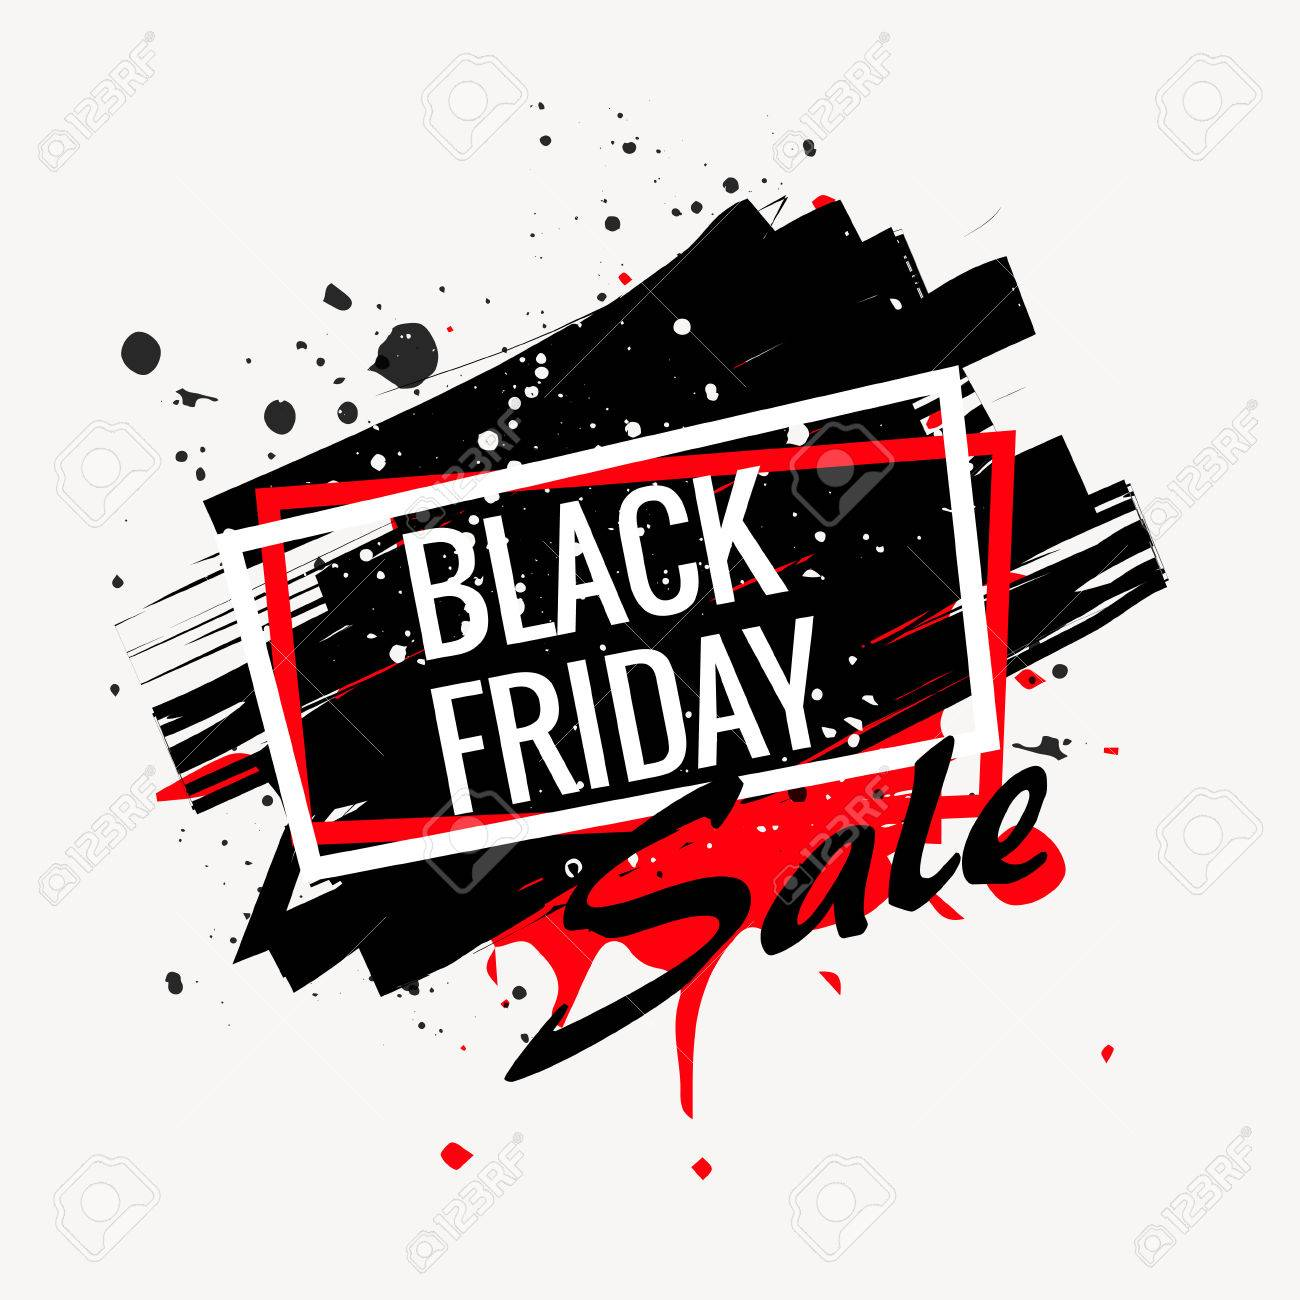 abstract black friday sale poster - 60197642